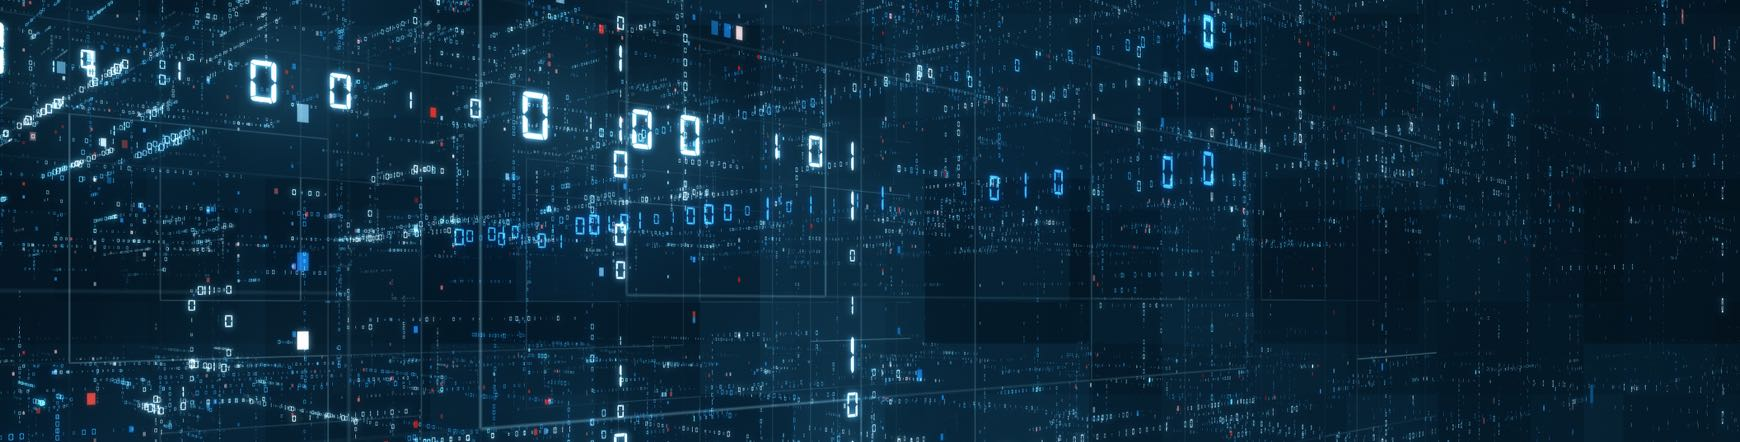 Digital binary code matrix background - 3D rendering of a scientific technology data binary code network conveying connectivity, complexity and data flood of modern digital age.